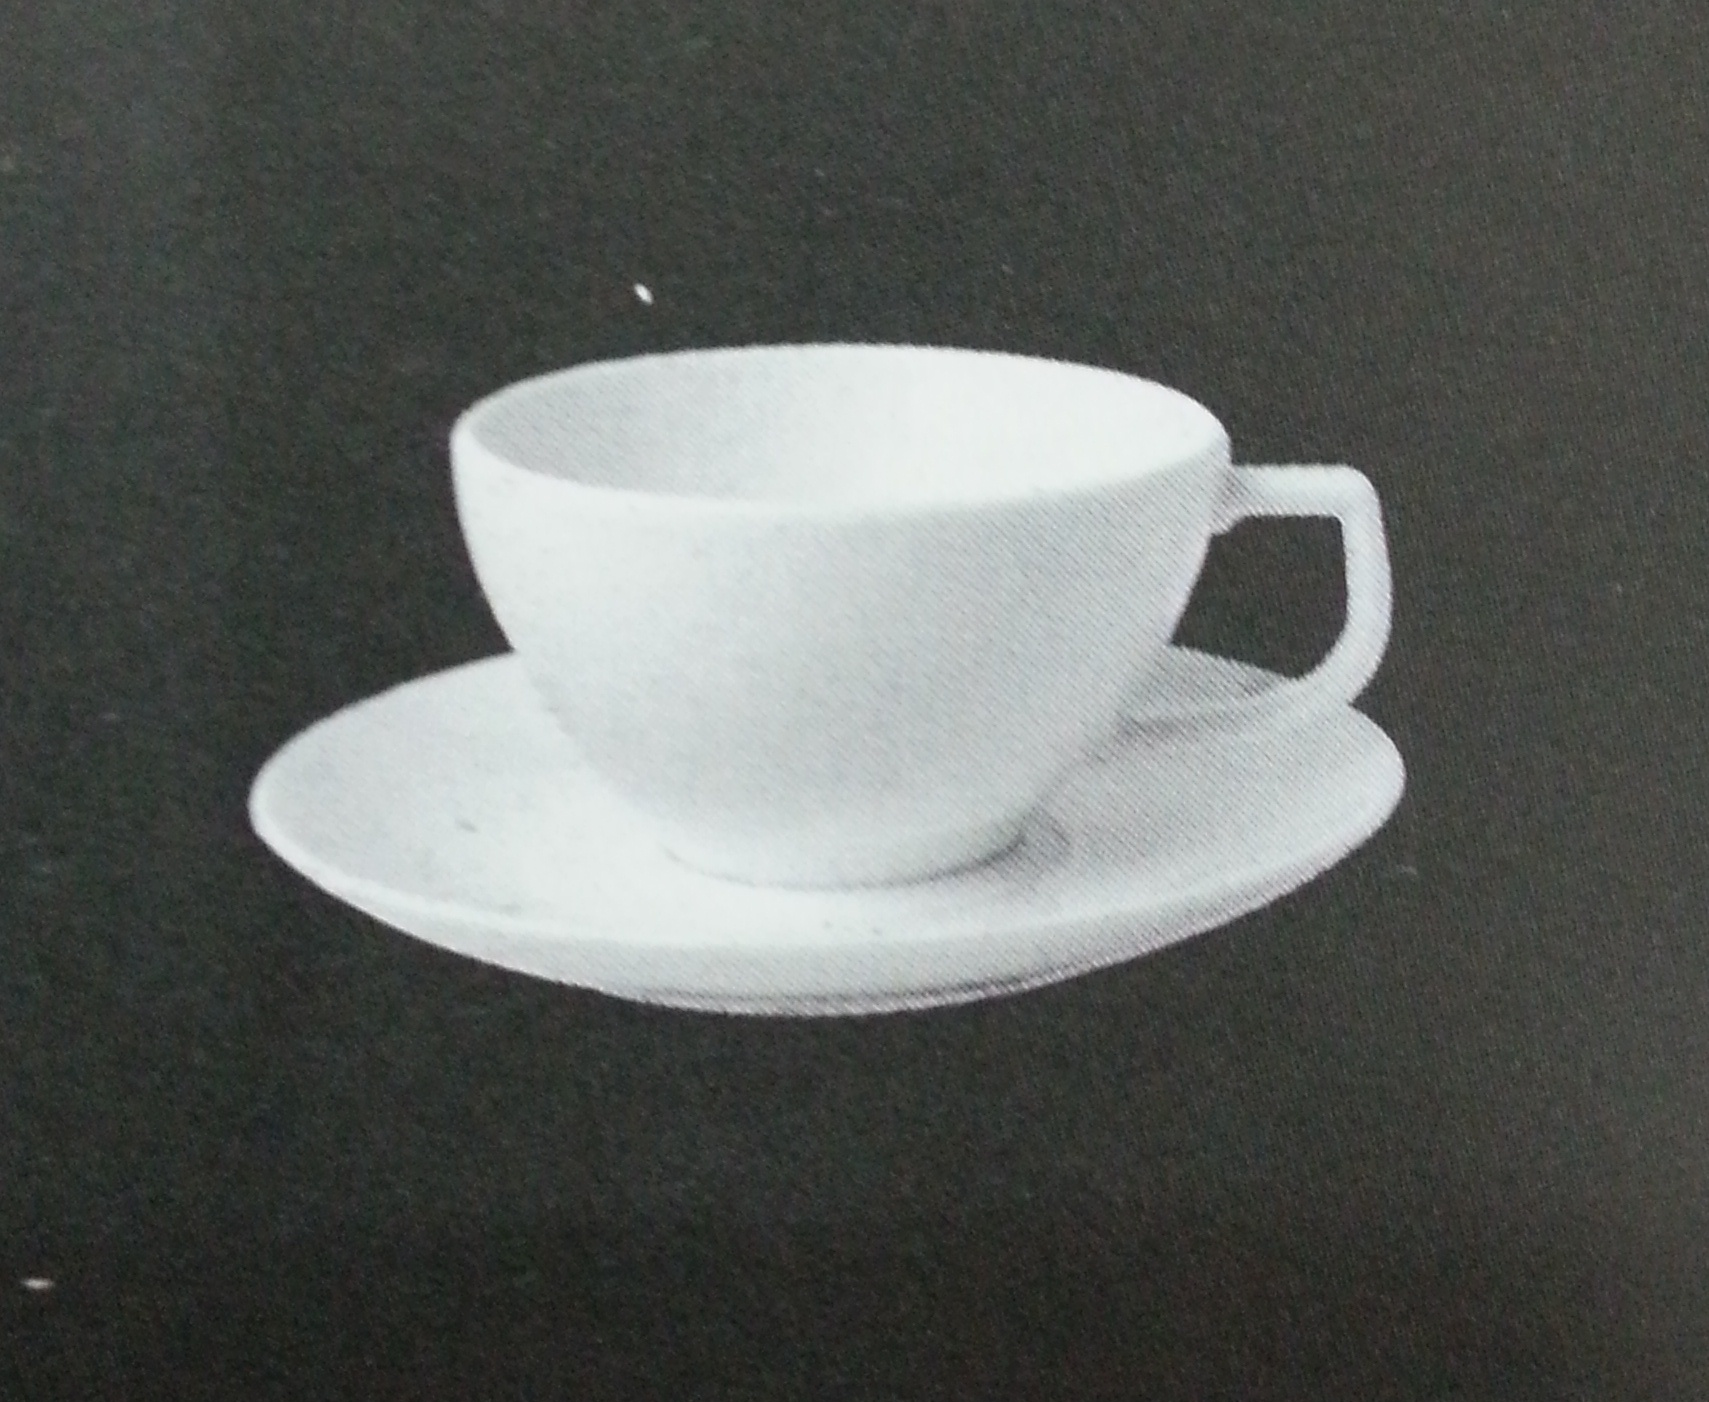 TEA CUP Code : P 7321 COFFEE CUP SAUCER Code : P 7315/A